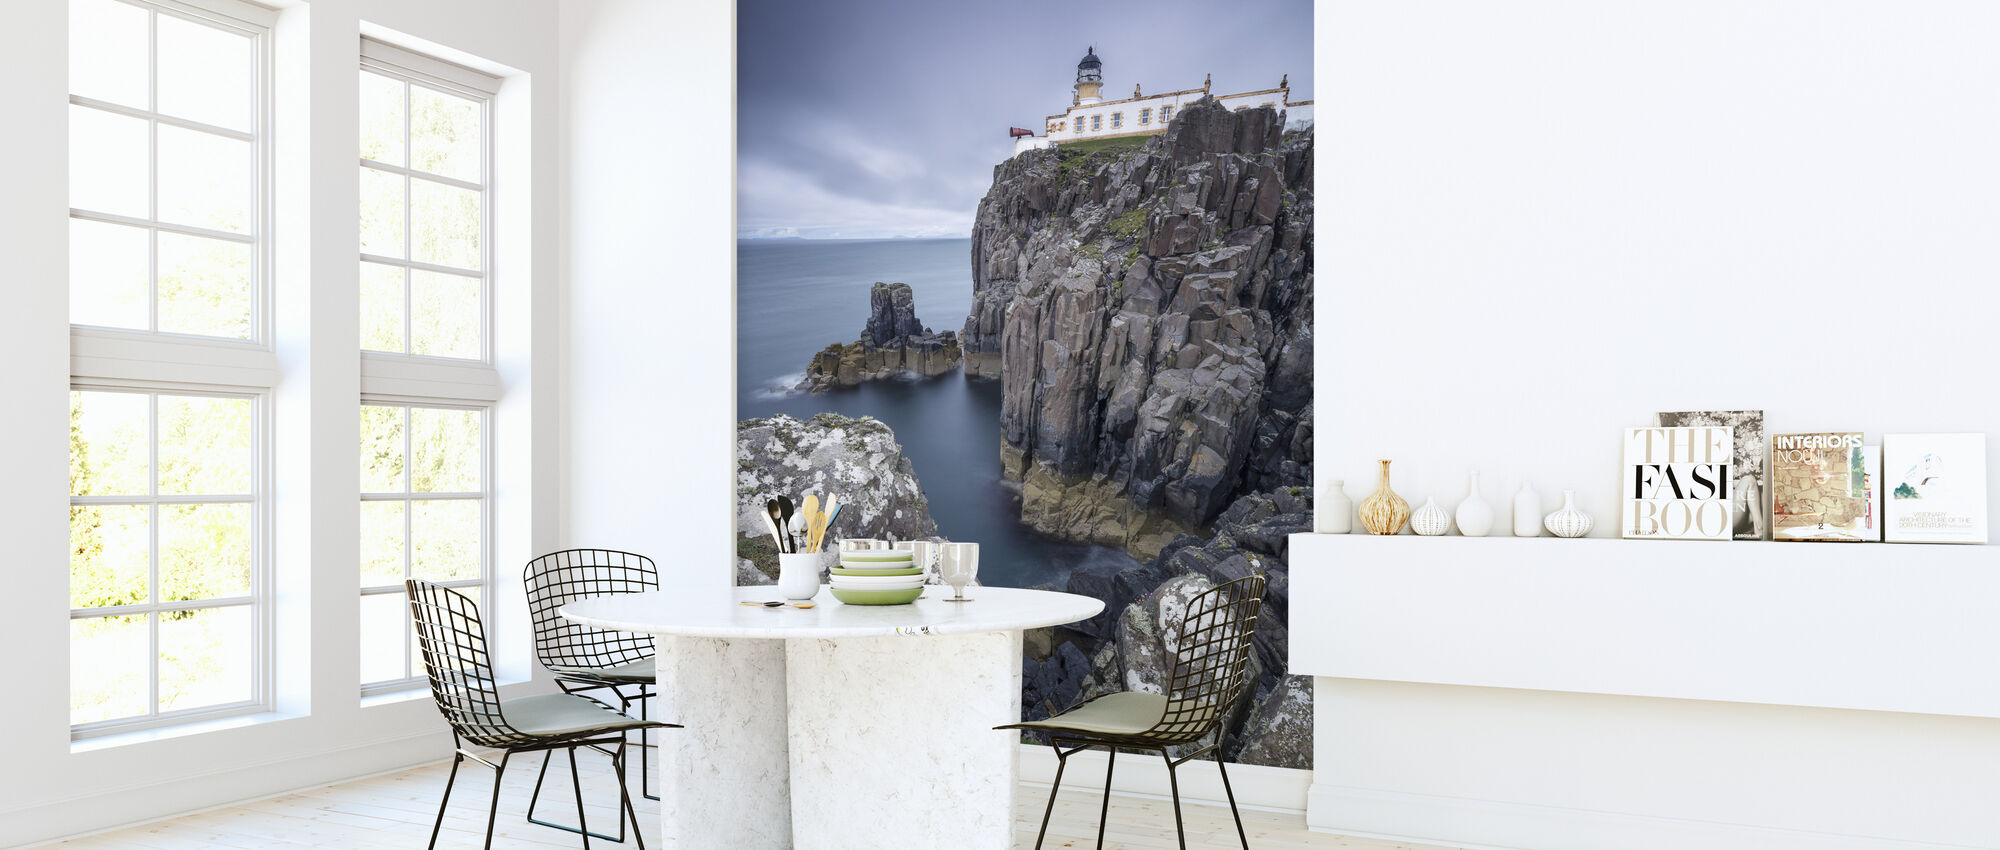 Lighthouse at Neist Point, Isle of Skye - Scotland - Wallpaper - Kitchen